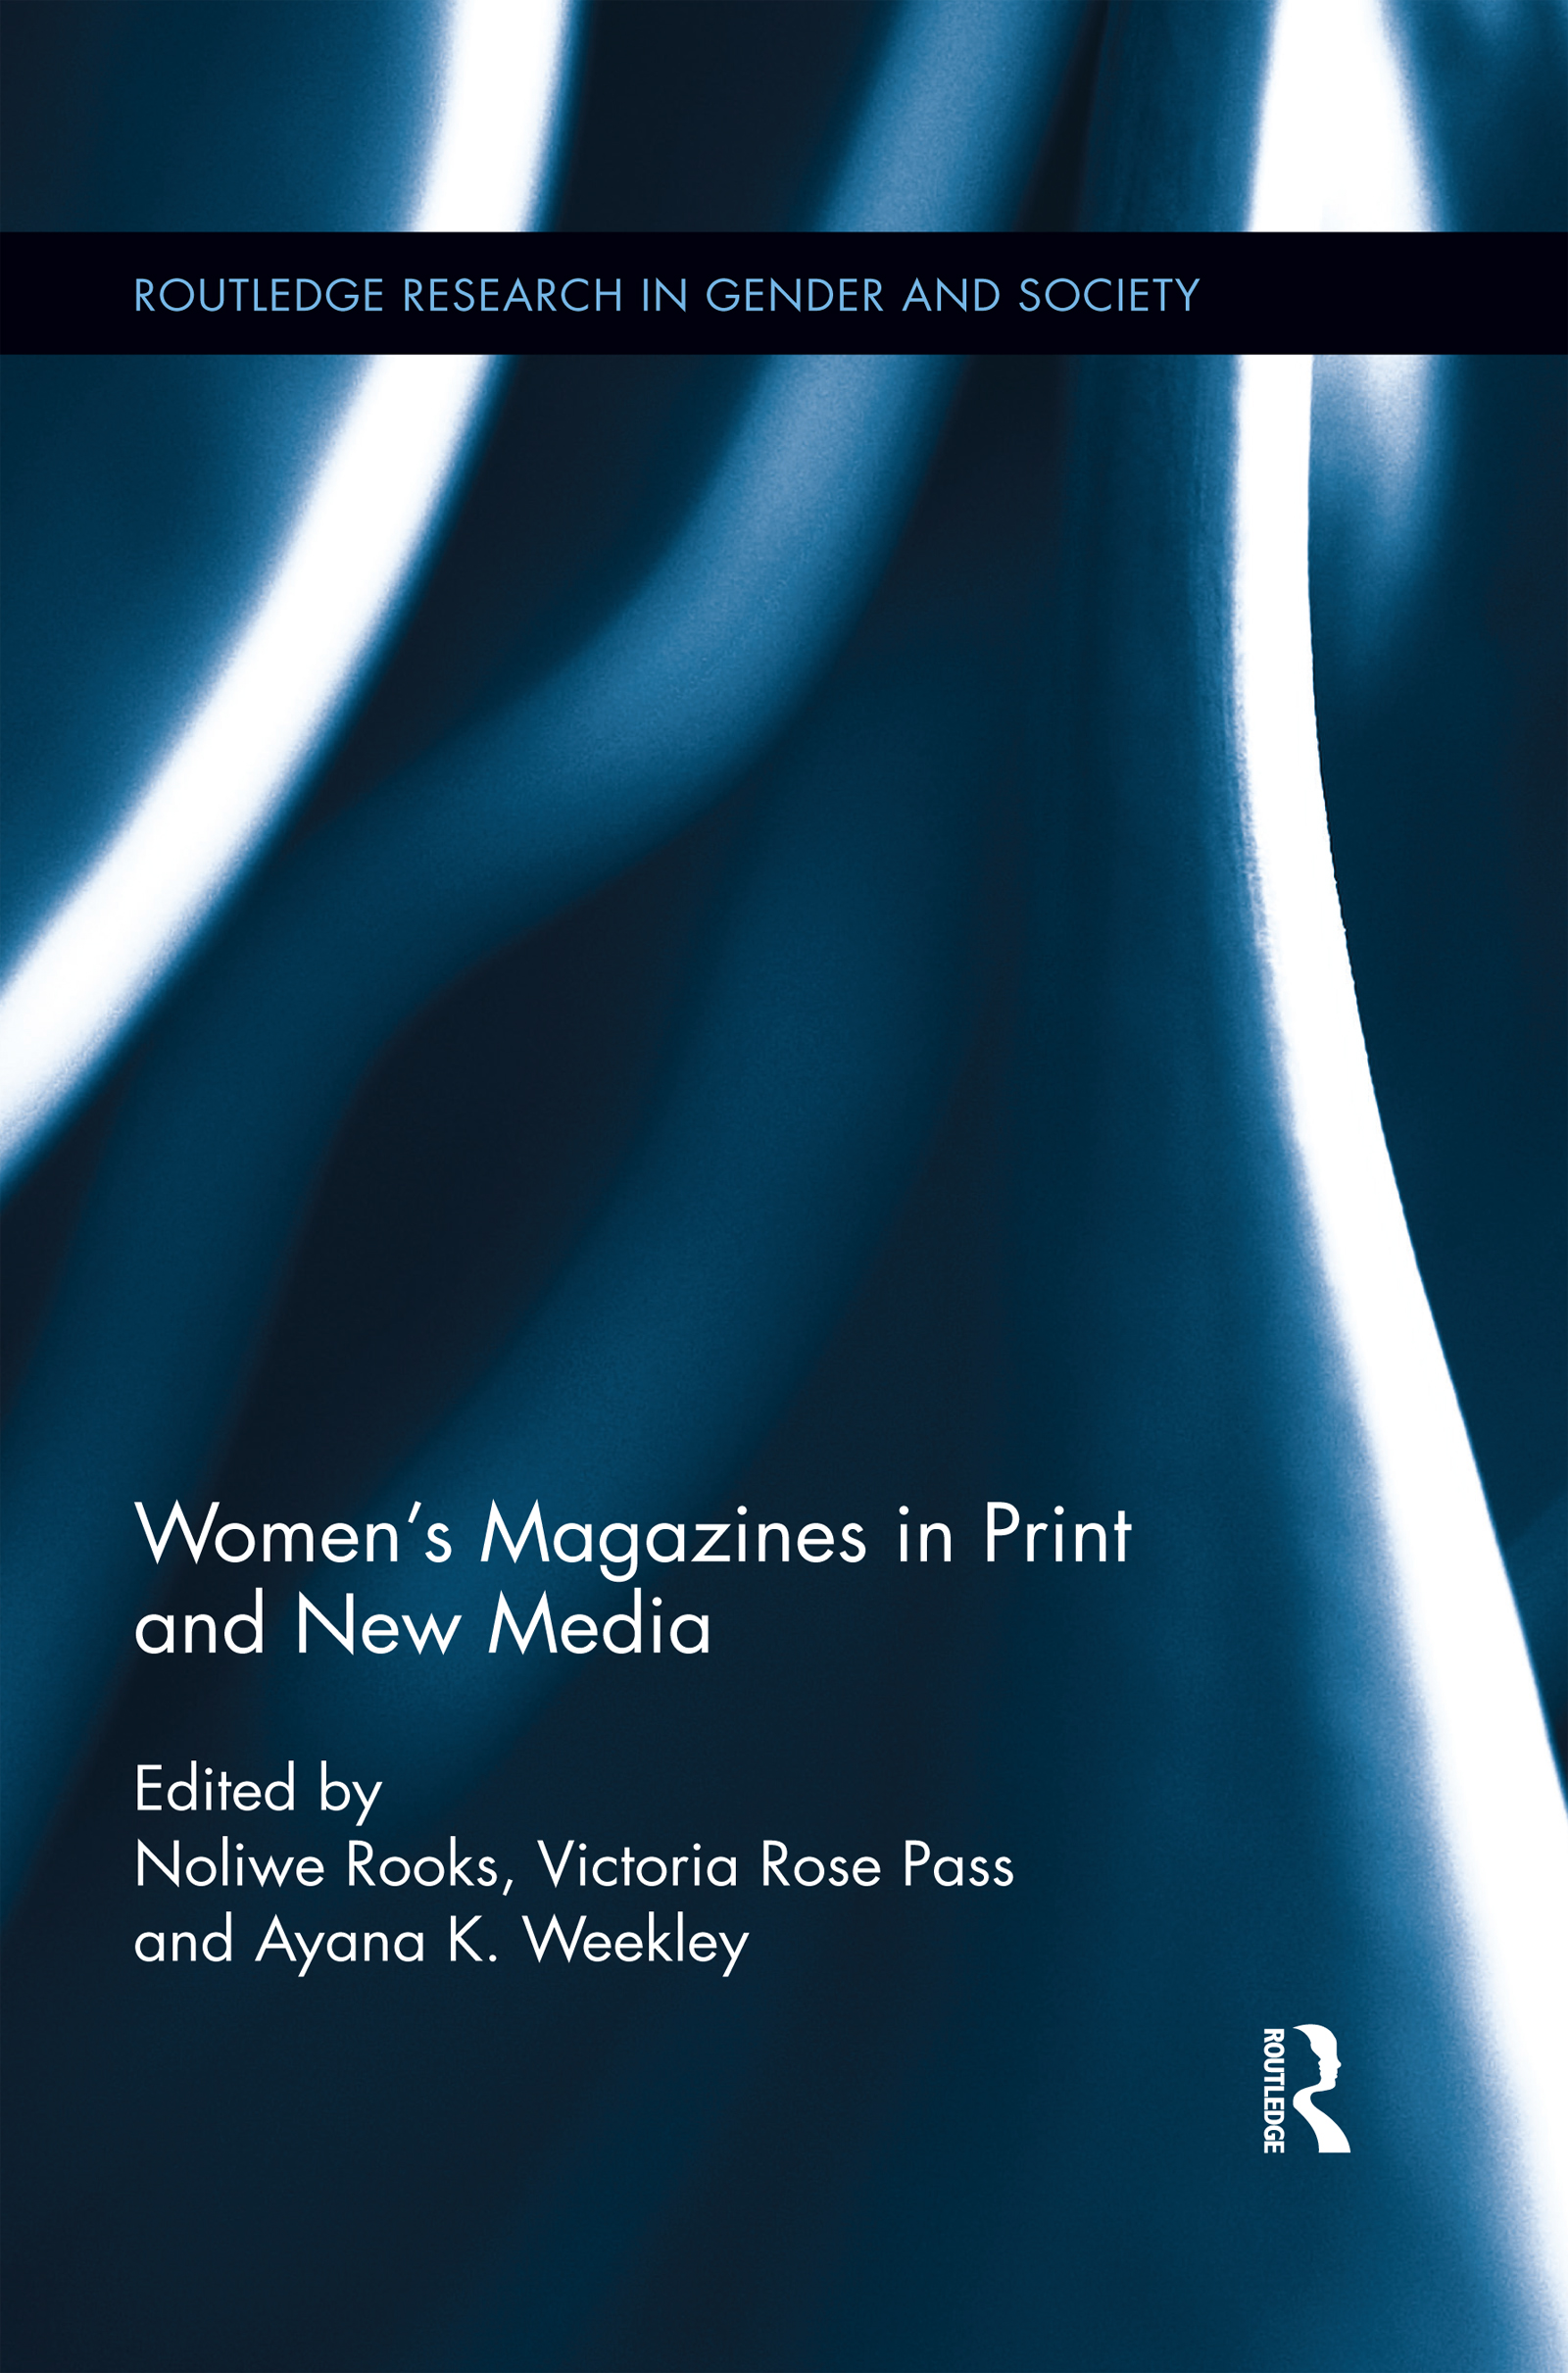 Women's Magazines in Print and New Media